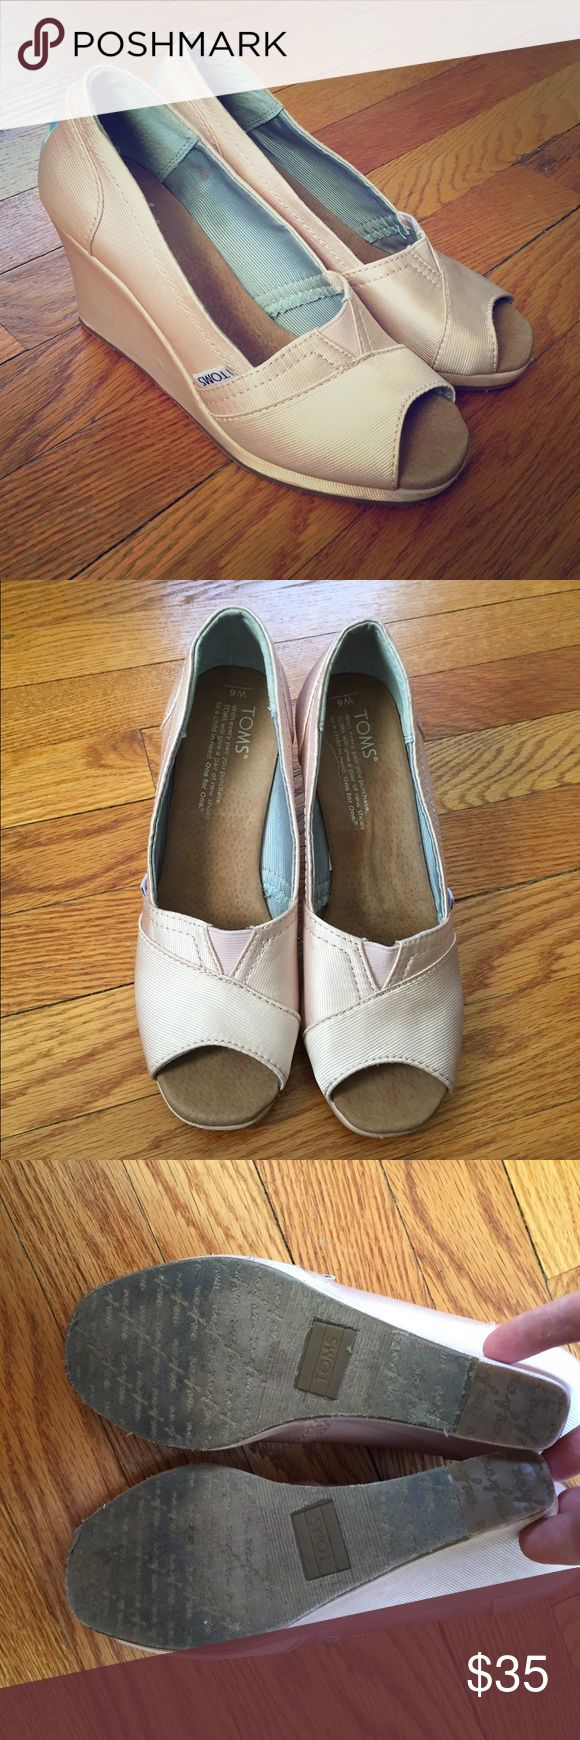 Pale Pink Toms Wedges Pale pink peep toe wedges by Toms. Clean and ready to wear. TOMS Shoes Wedges